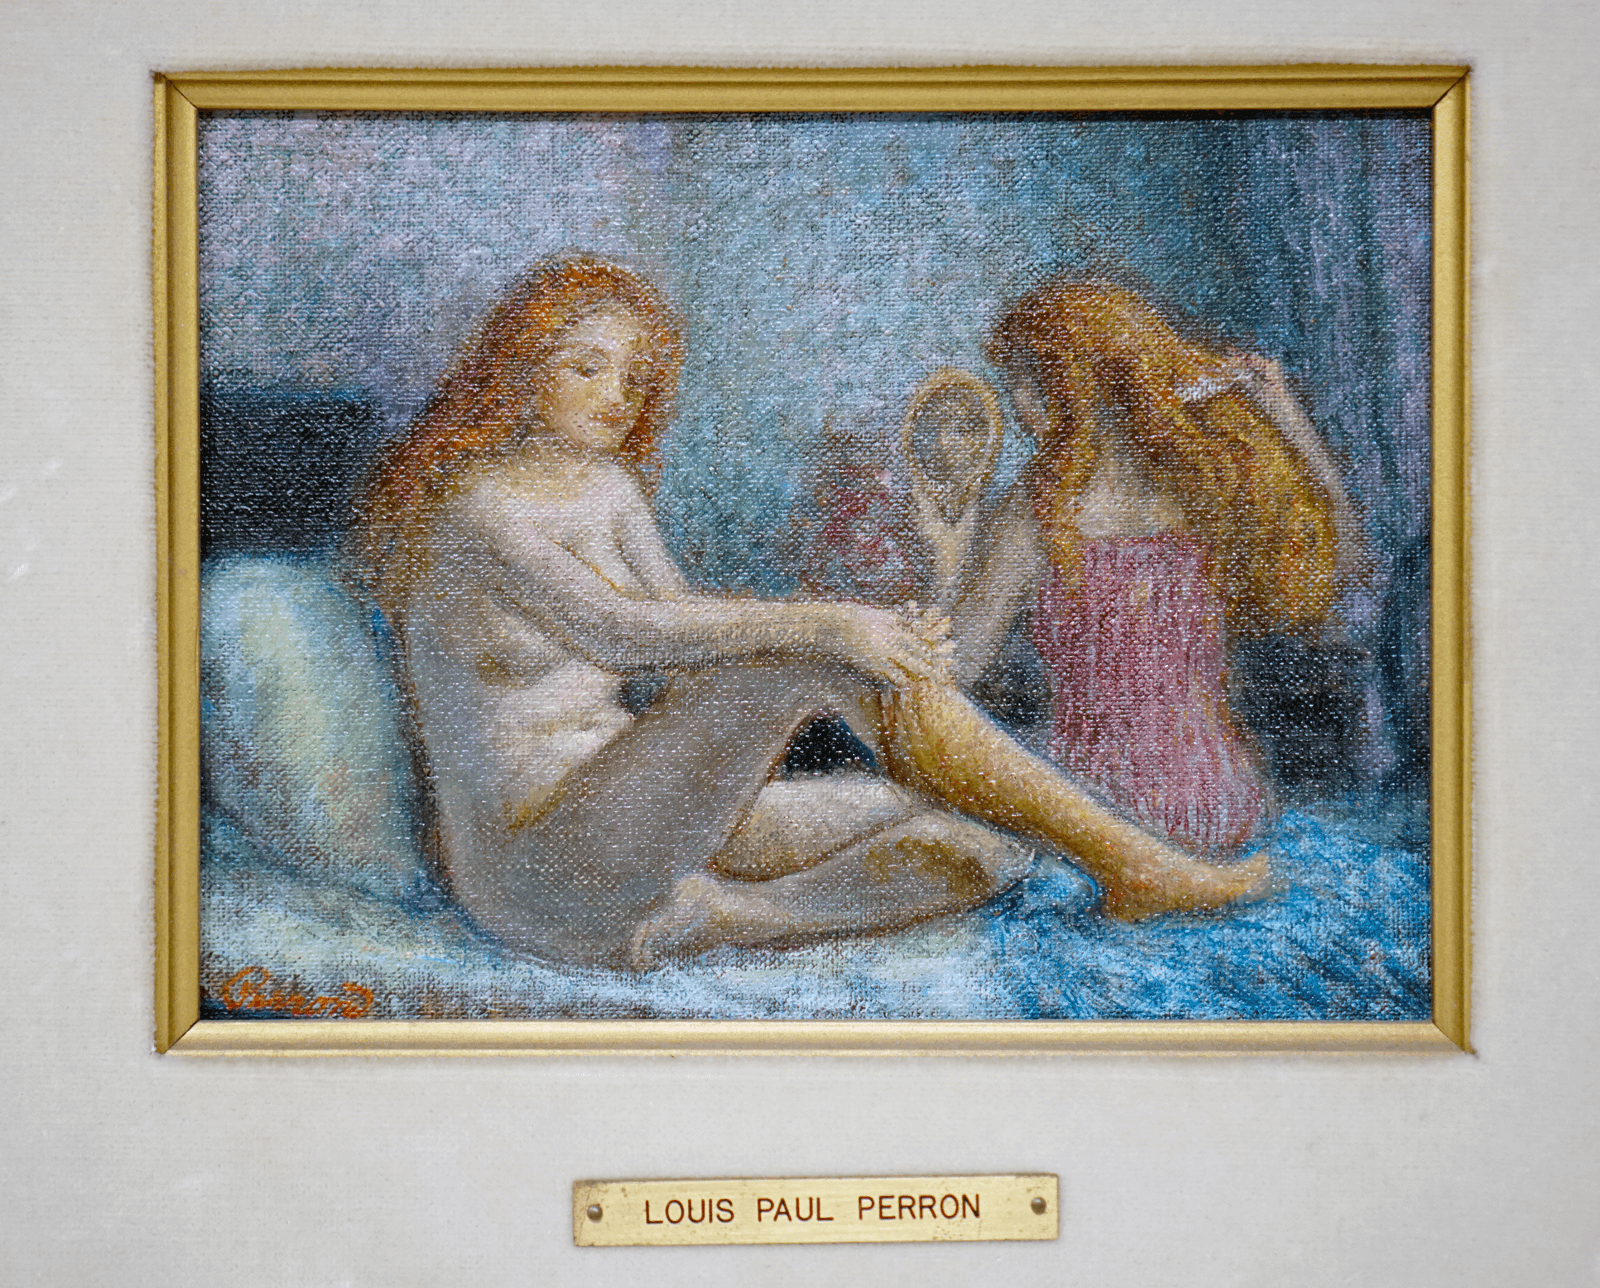 Canadian Louis Paul Perron Nudes Oil Painting